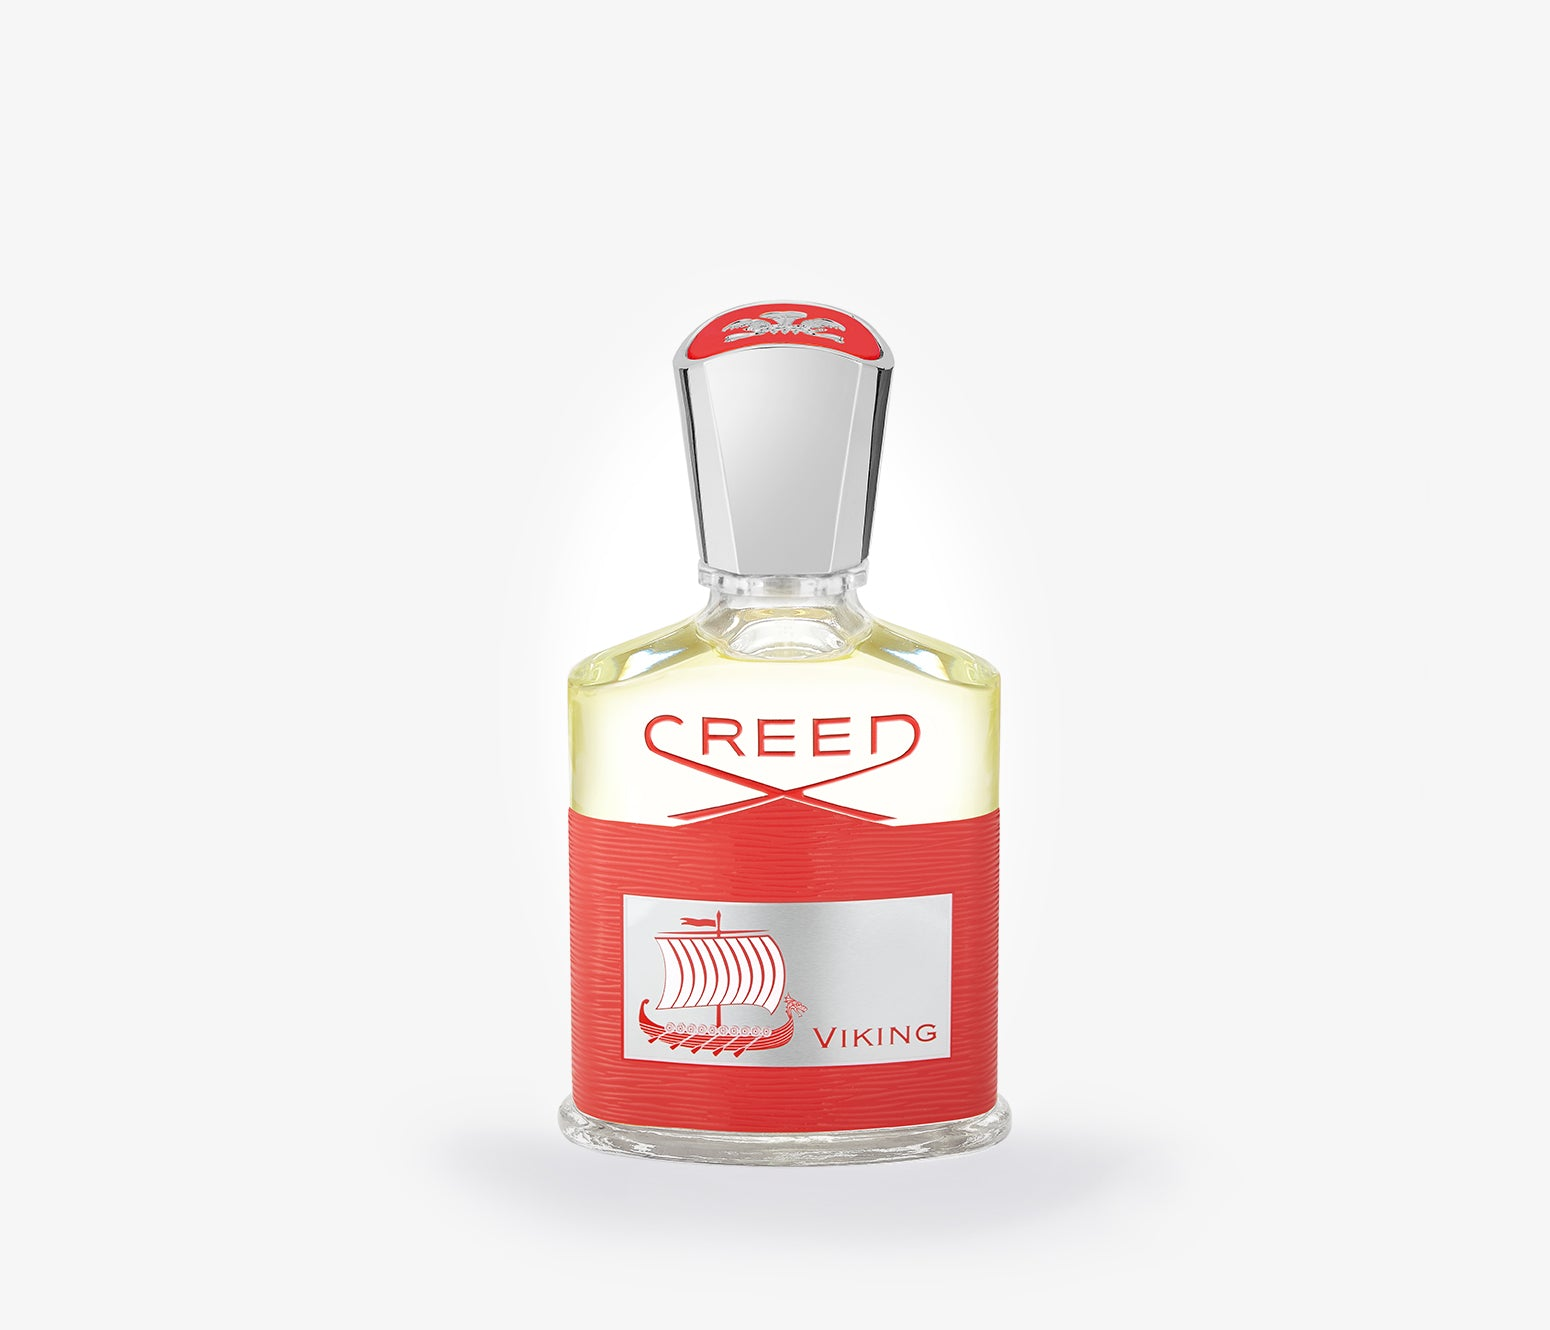 Creed - Viking - 100ml - SLY001 - product image - Fragrance - Les Senteurs